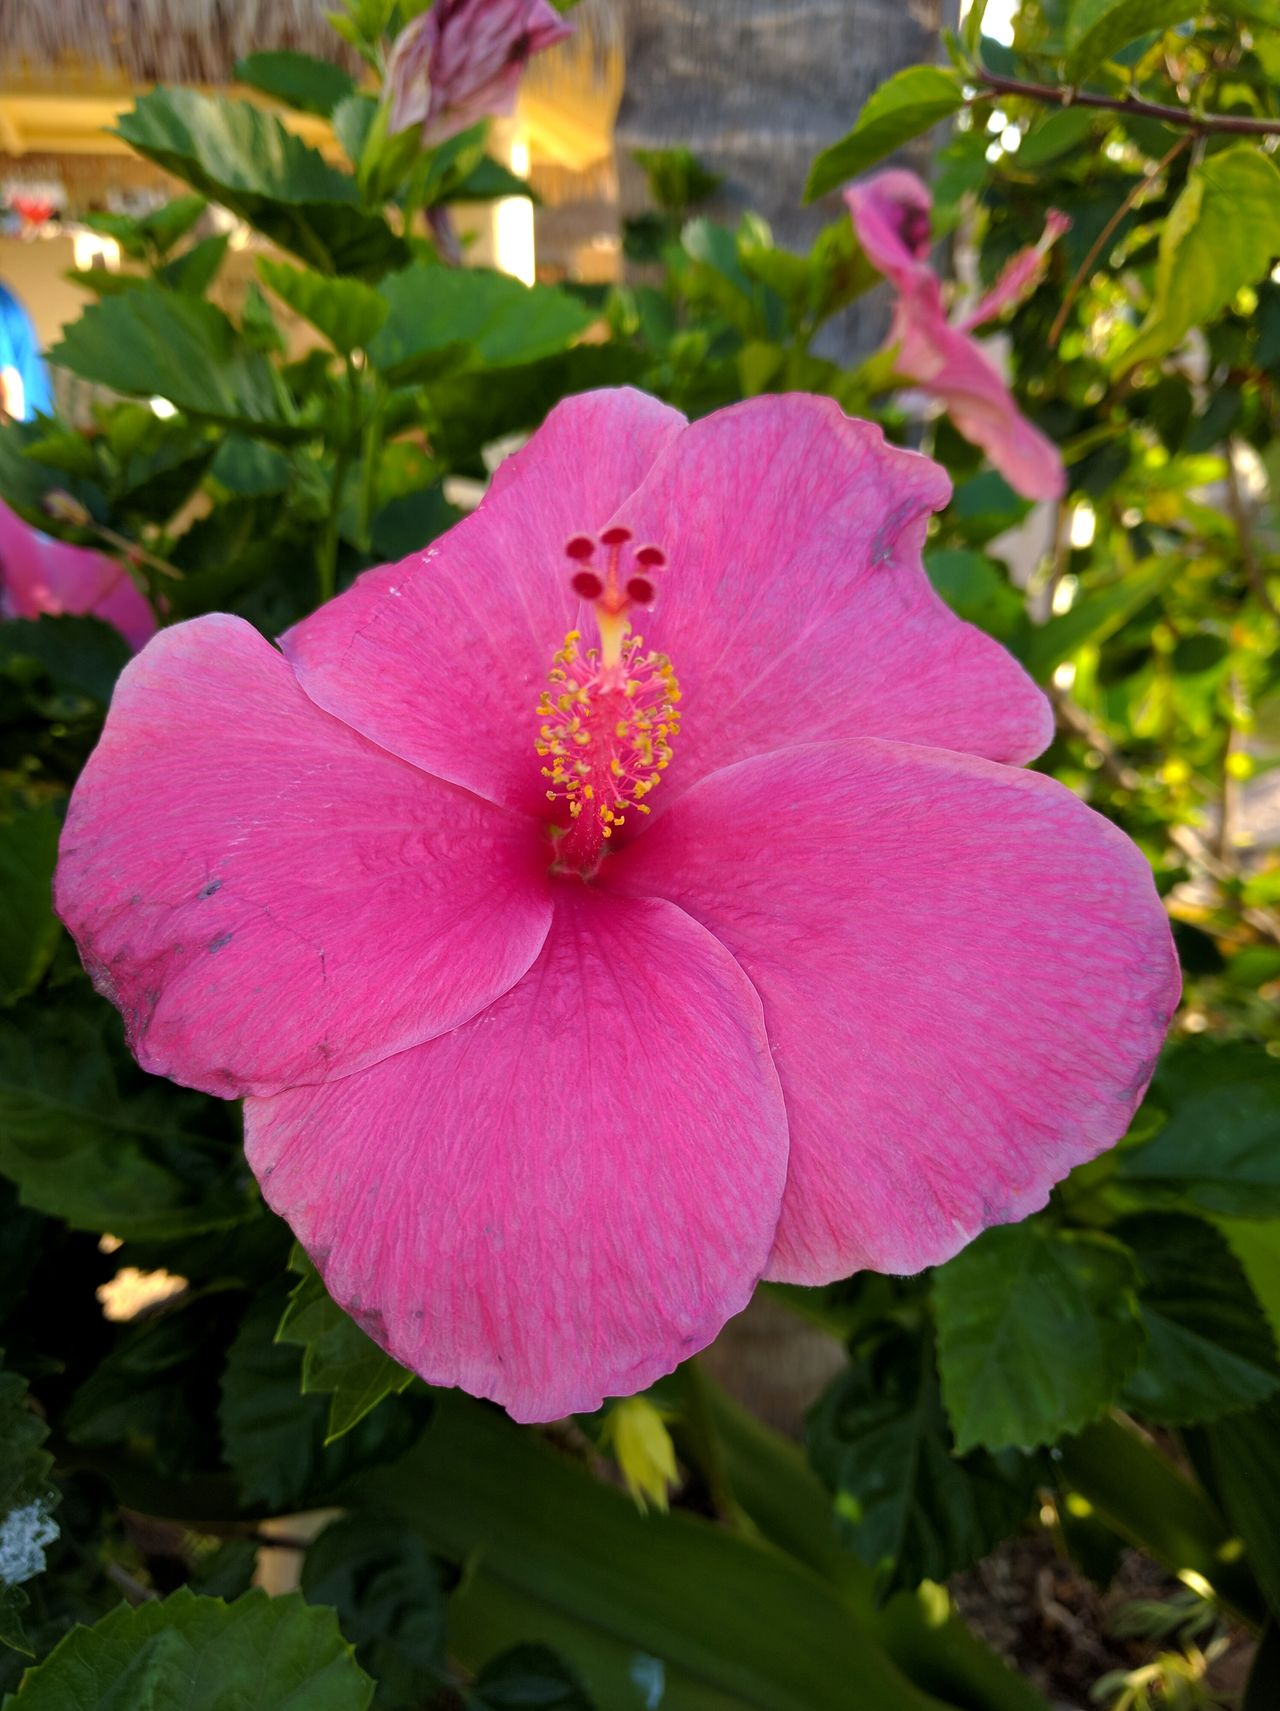 gorgeous pink hibiscus Flower Pink Color Beauty In Nature Single Flower Flowers,Plants & Garden EyeEm Nature Lover Tropical Beauty No People Beauty In Nature Flowers_collection Eyeemphotography Flower Collection Mobile Photography Hibiscus 🌺 Flowers EyeEm Gallery Green Color Nature